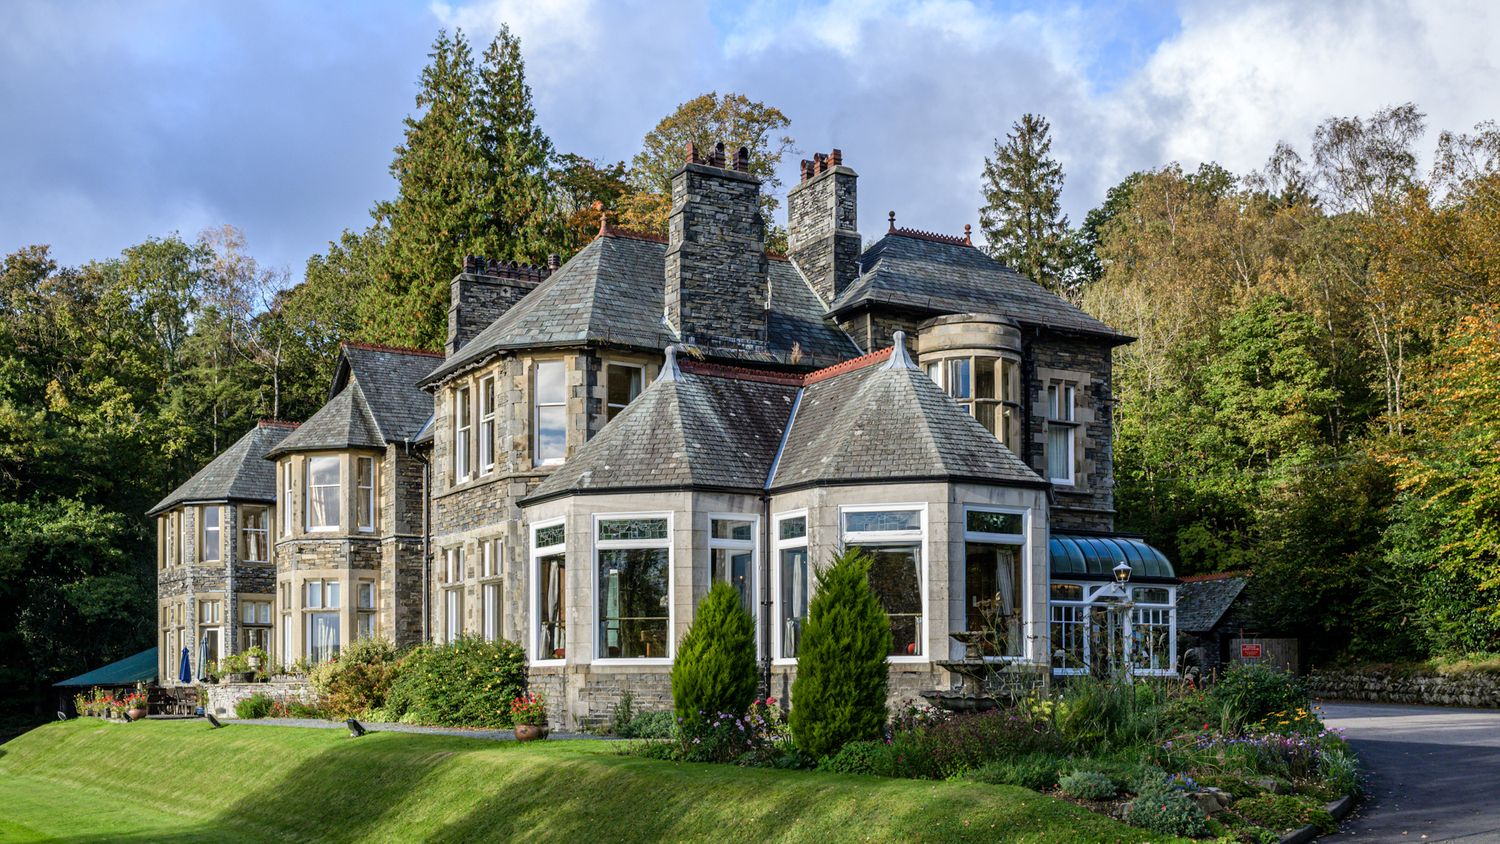 Merewood Country House Hotel overlooking Windermere in the Lake District